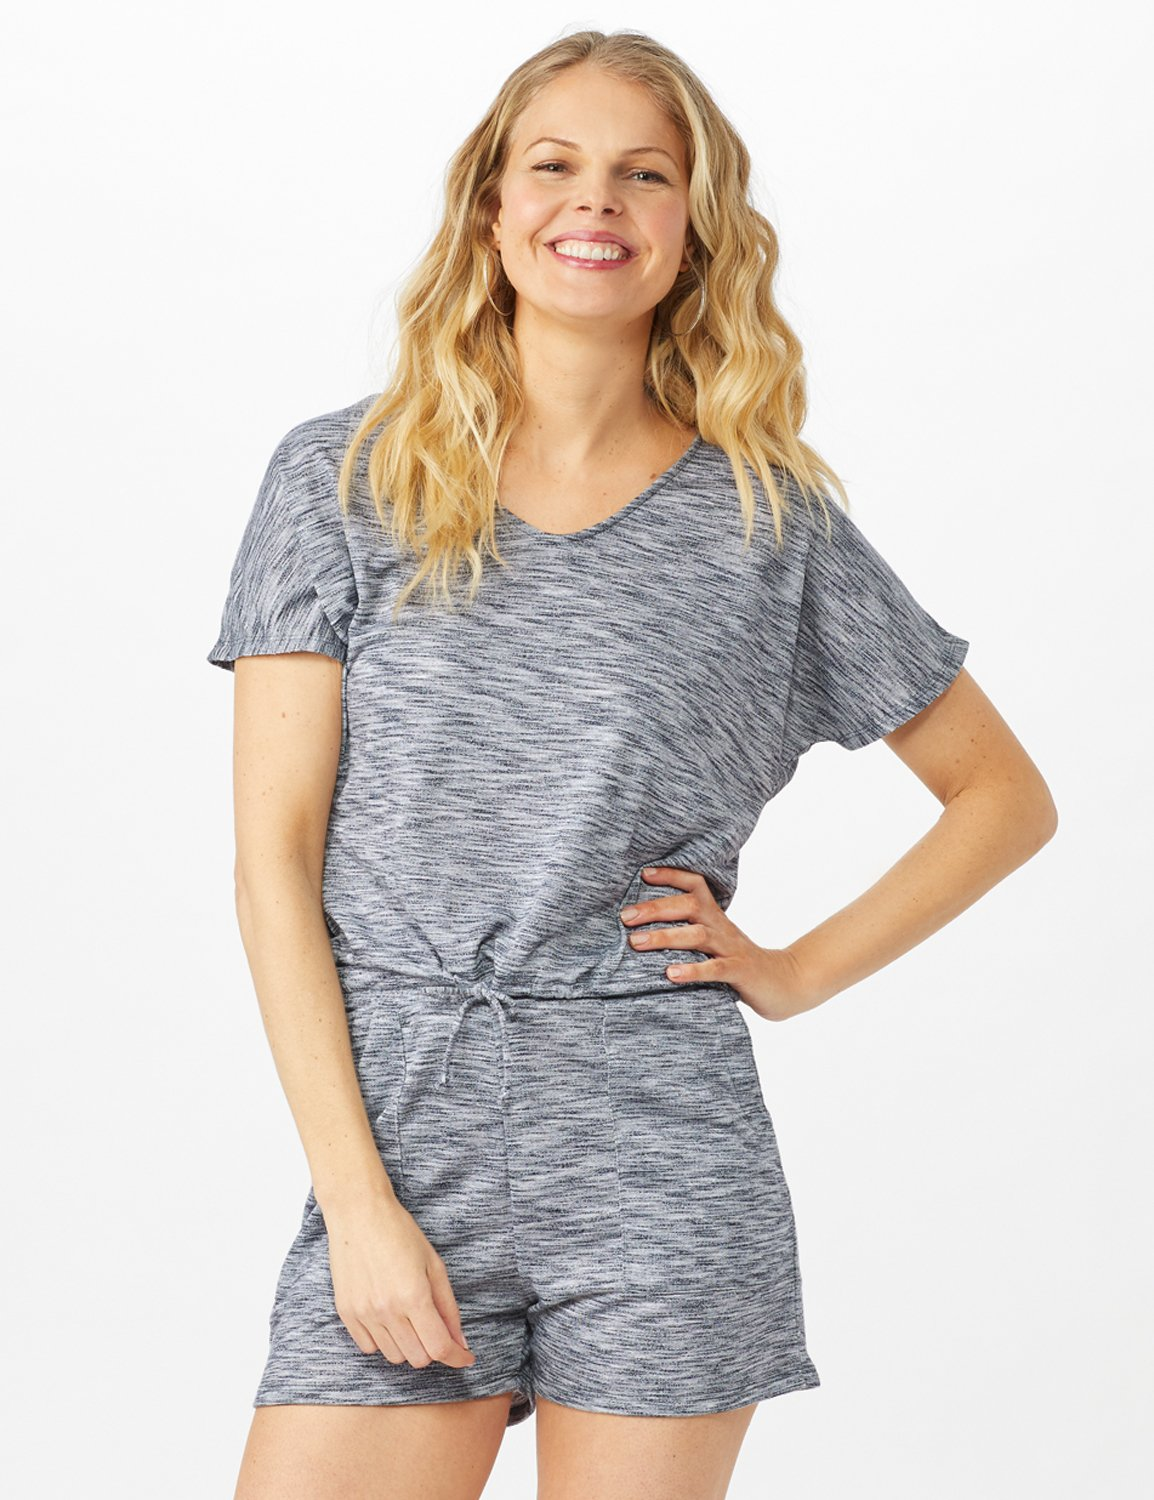 Space Dye French Terry Knit Top -Indigo - Front